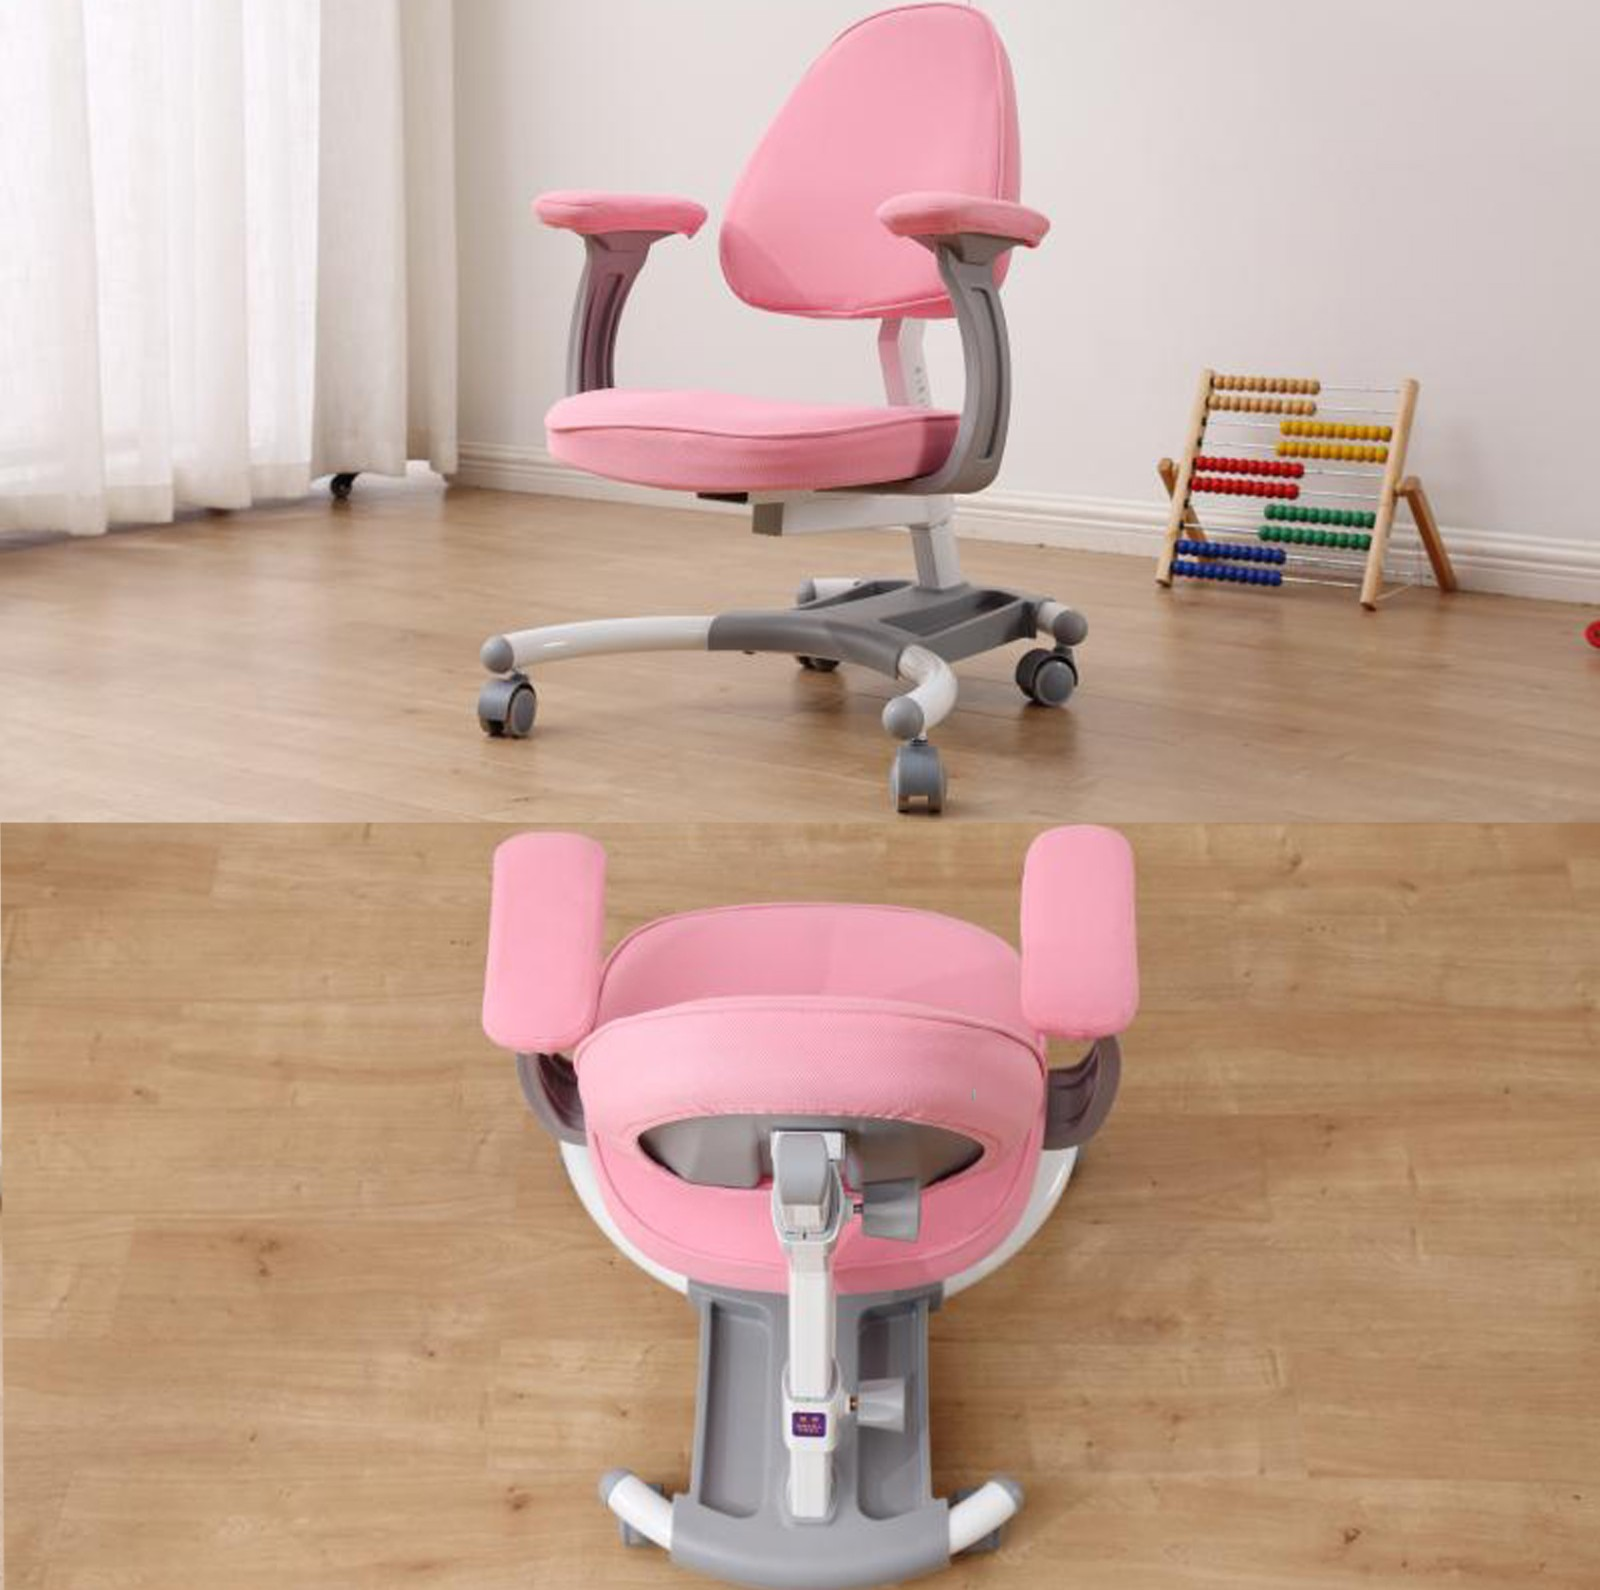 TBCZ study chair for students supplier for studry room-7